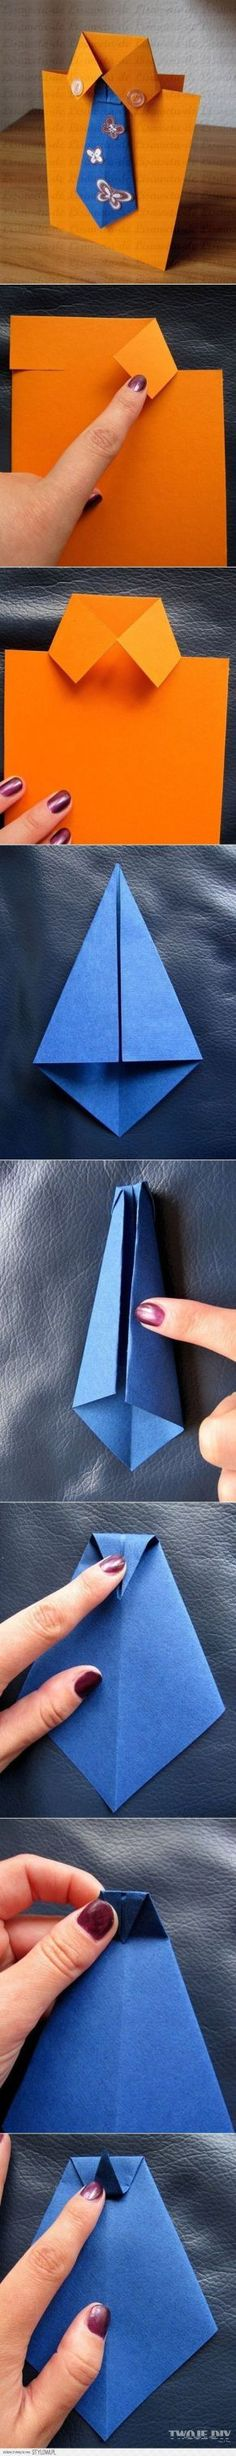 Fathers Day Card Idea: How to make a shirt and tie greeting card cool shirt diy tie diy crafts do it yourself diy projects greeting card Easy Diy Crafts, Crafts For Kids, Arts And Crafts, Paper Crafts, Card Crafts, Craft Kids, Diy Paper, Diy Father's Day Cards, Diy Cards For Dad